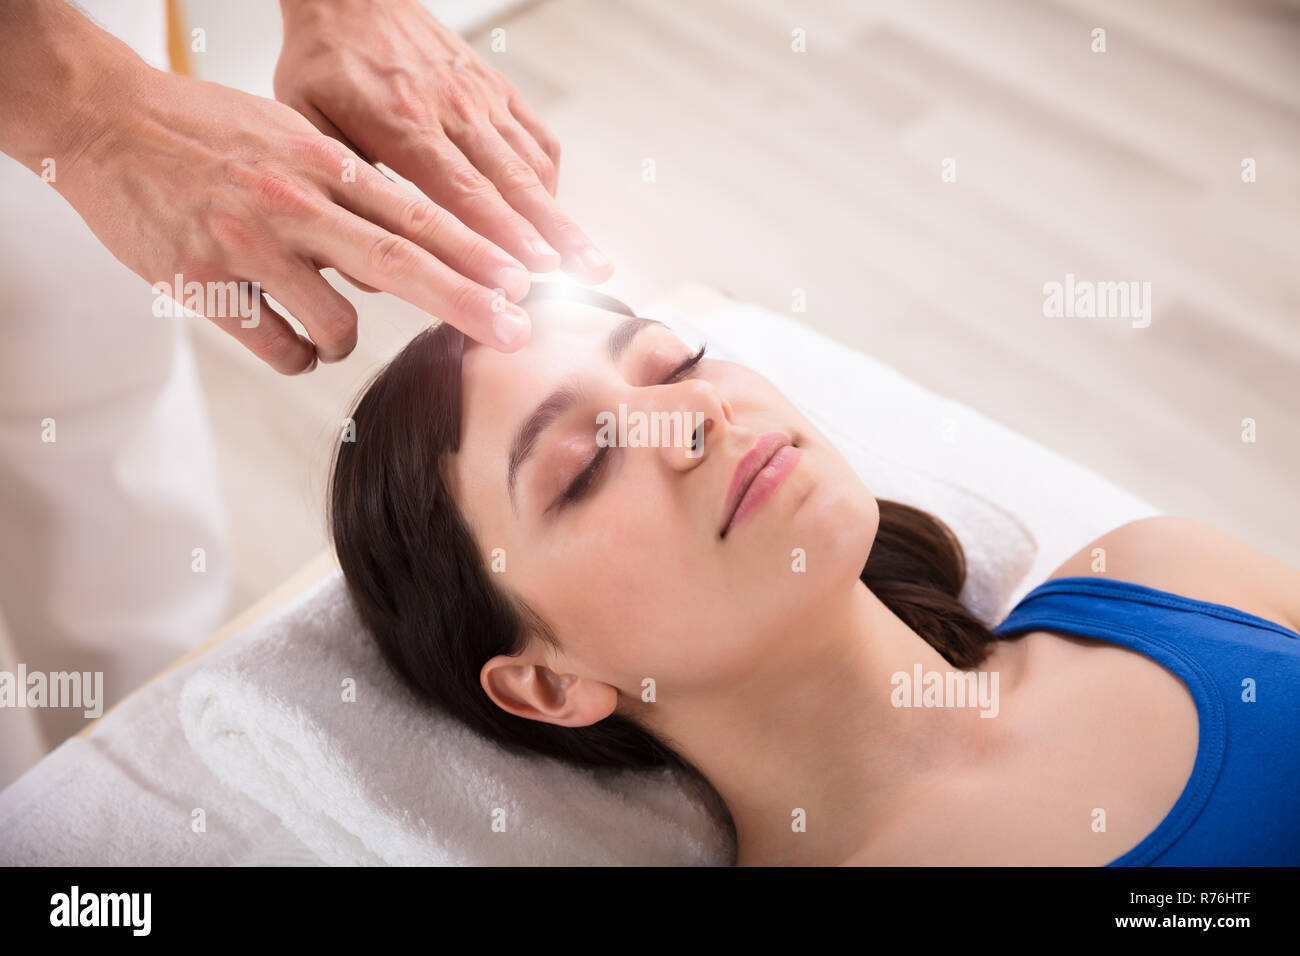 Healing Treatment Therapist Performing Reiki Healing Treatment On Woman Stock Photo